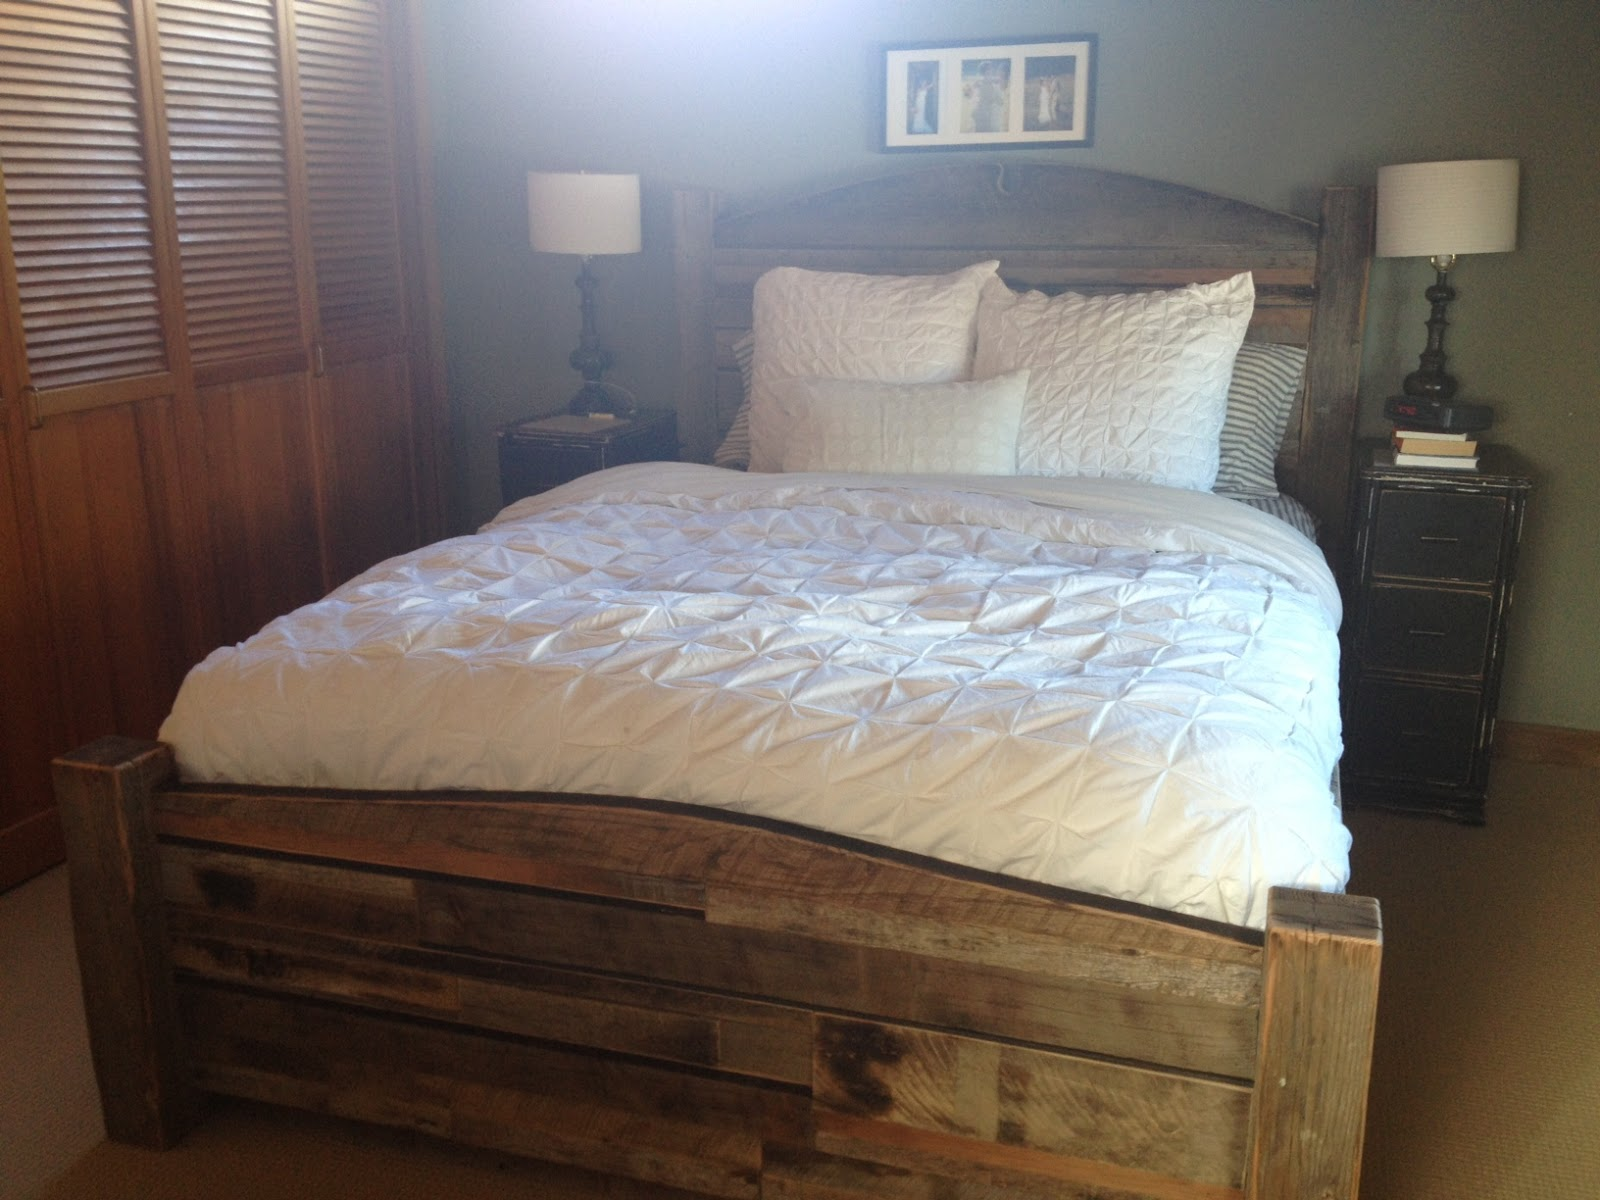 ... DIY Reclaimed Wood Bed Frame Plans Download queen platform bed plans